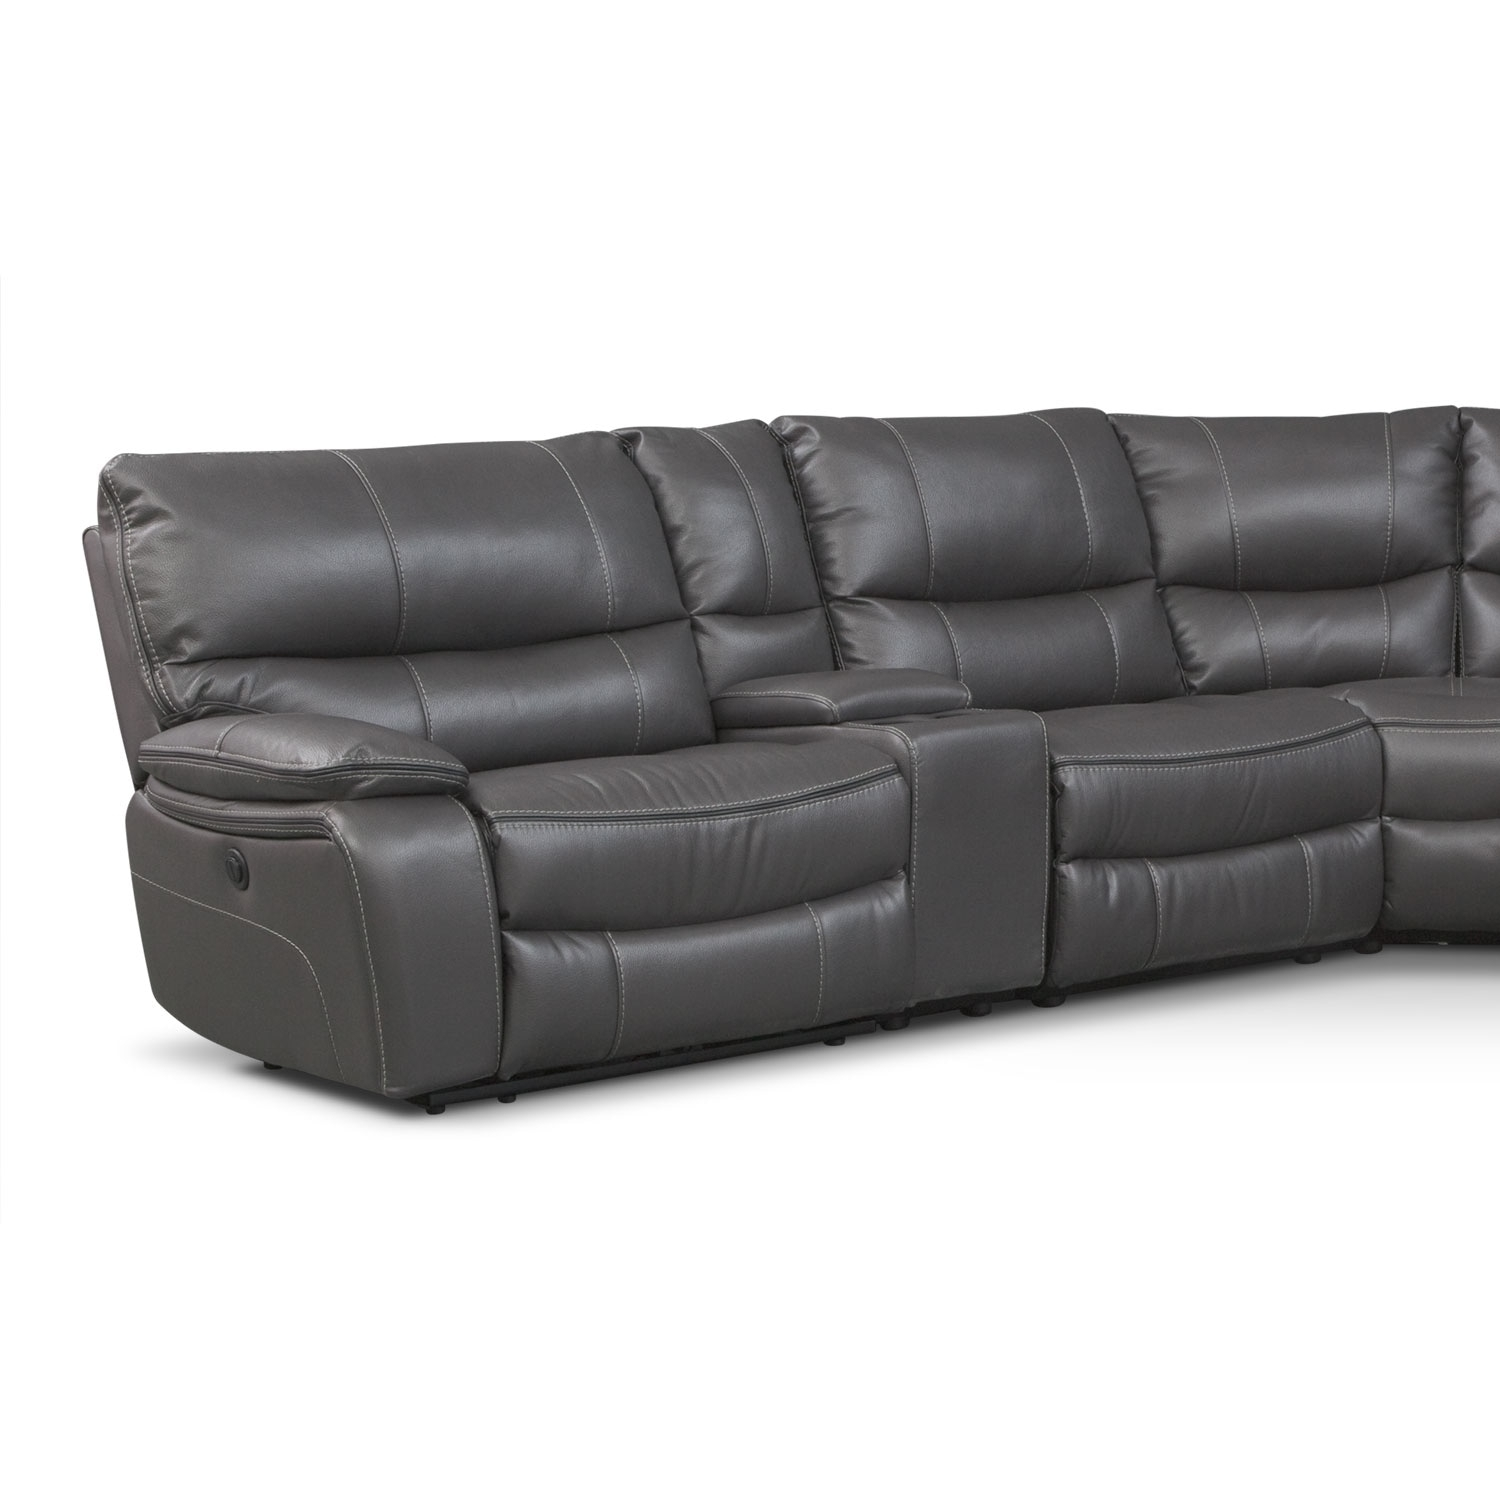 Orlando 6 Piece Power Reclining Sectional With 1 Stationary Chair Pertaining To Kristen Silver Grey 6 Piece Power Reclining Sectionals (View 10 of 25)